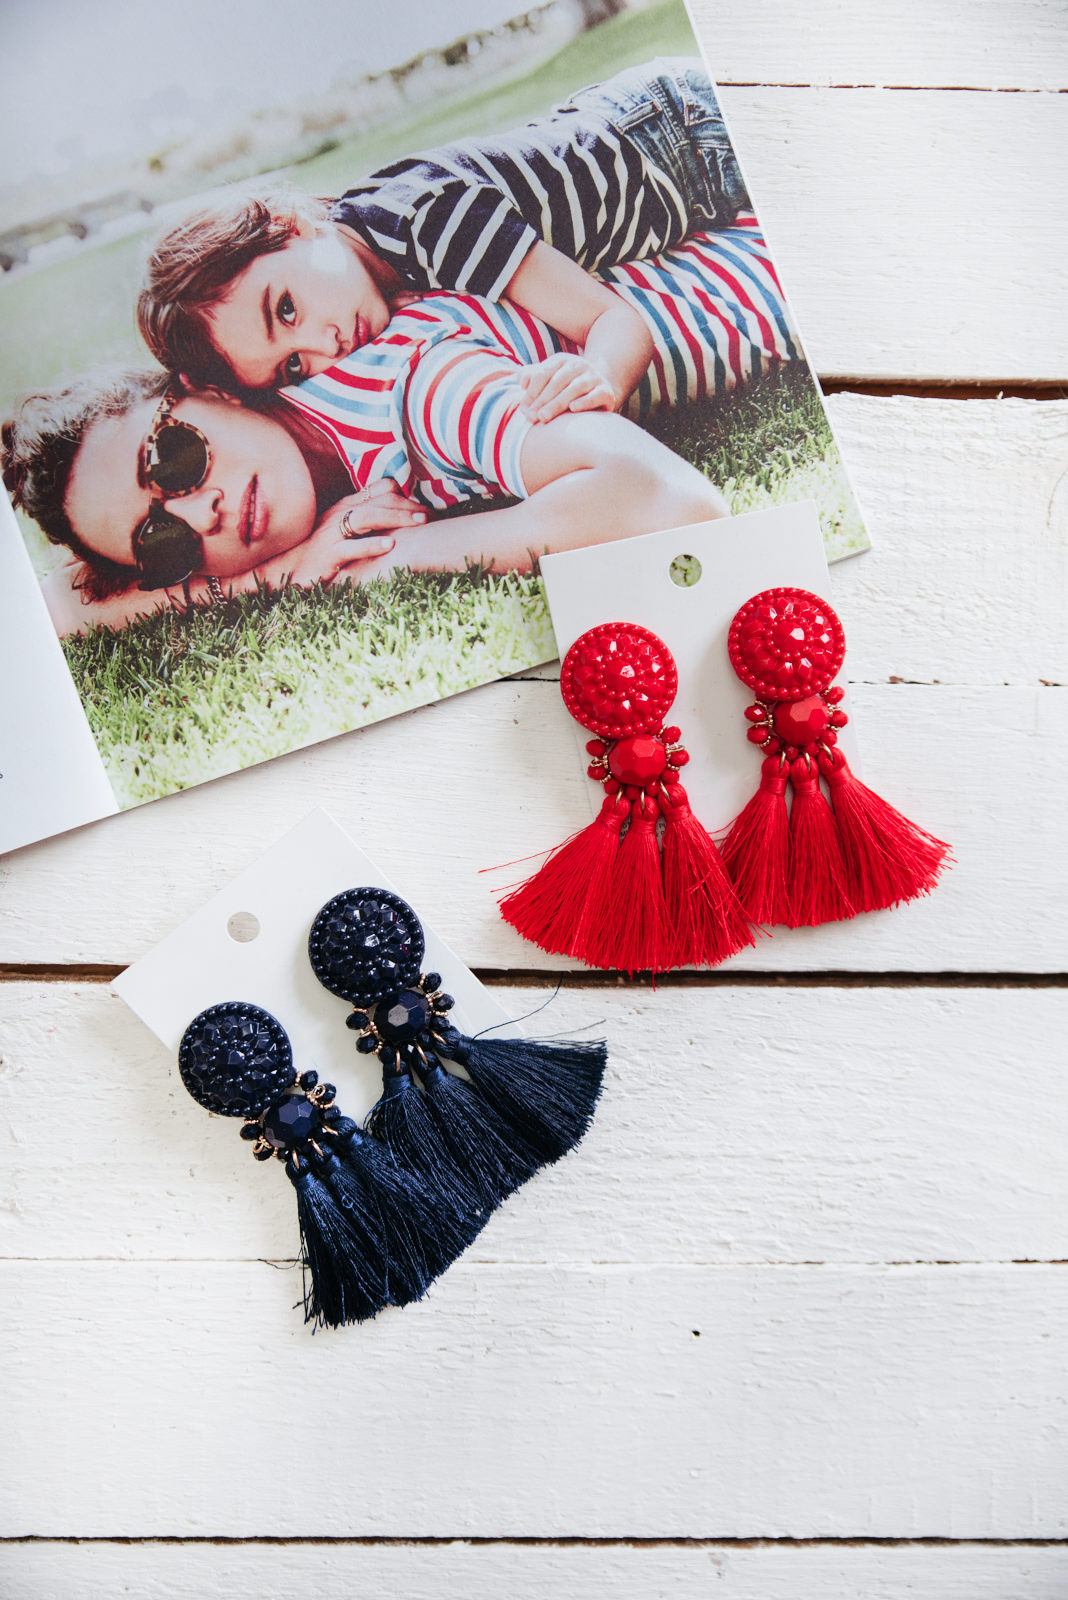 Blog-Mode-And-The-City-Lifestyle-Cinq-Petites-Choses-209-boucles-oreilles-2